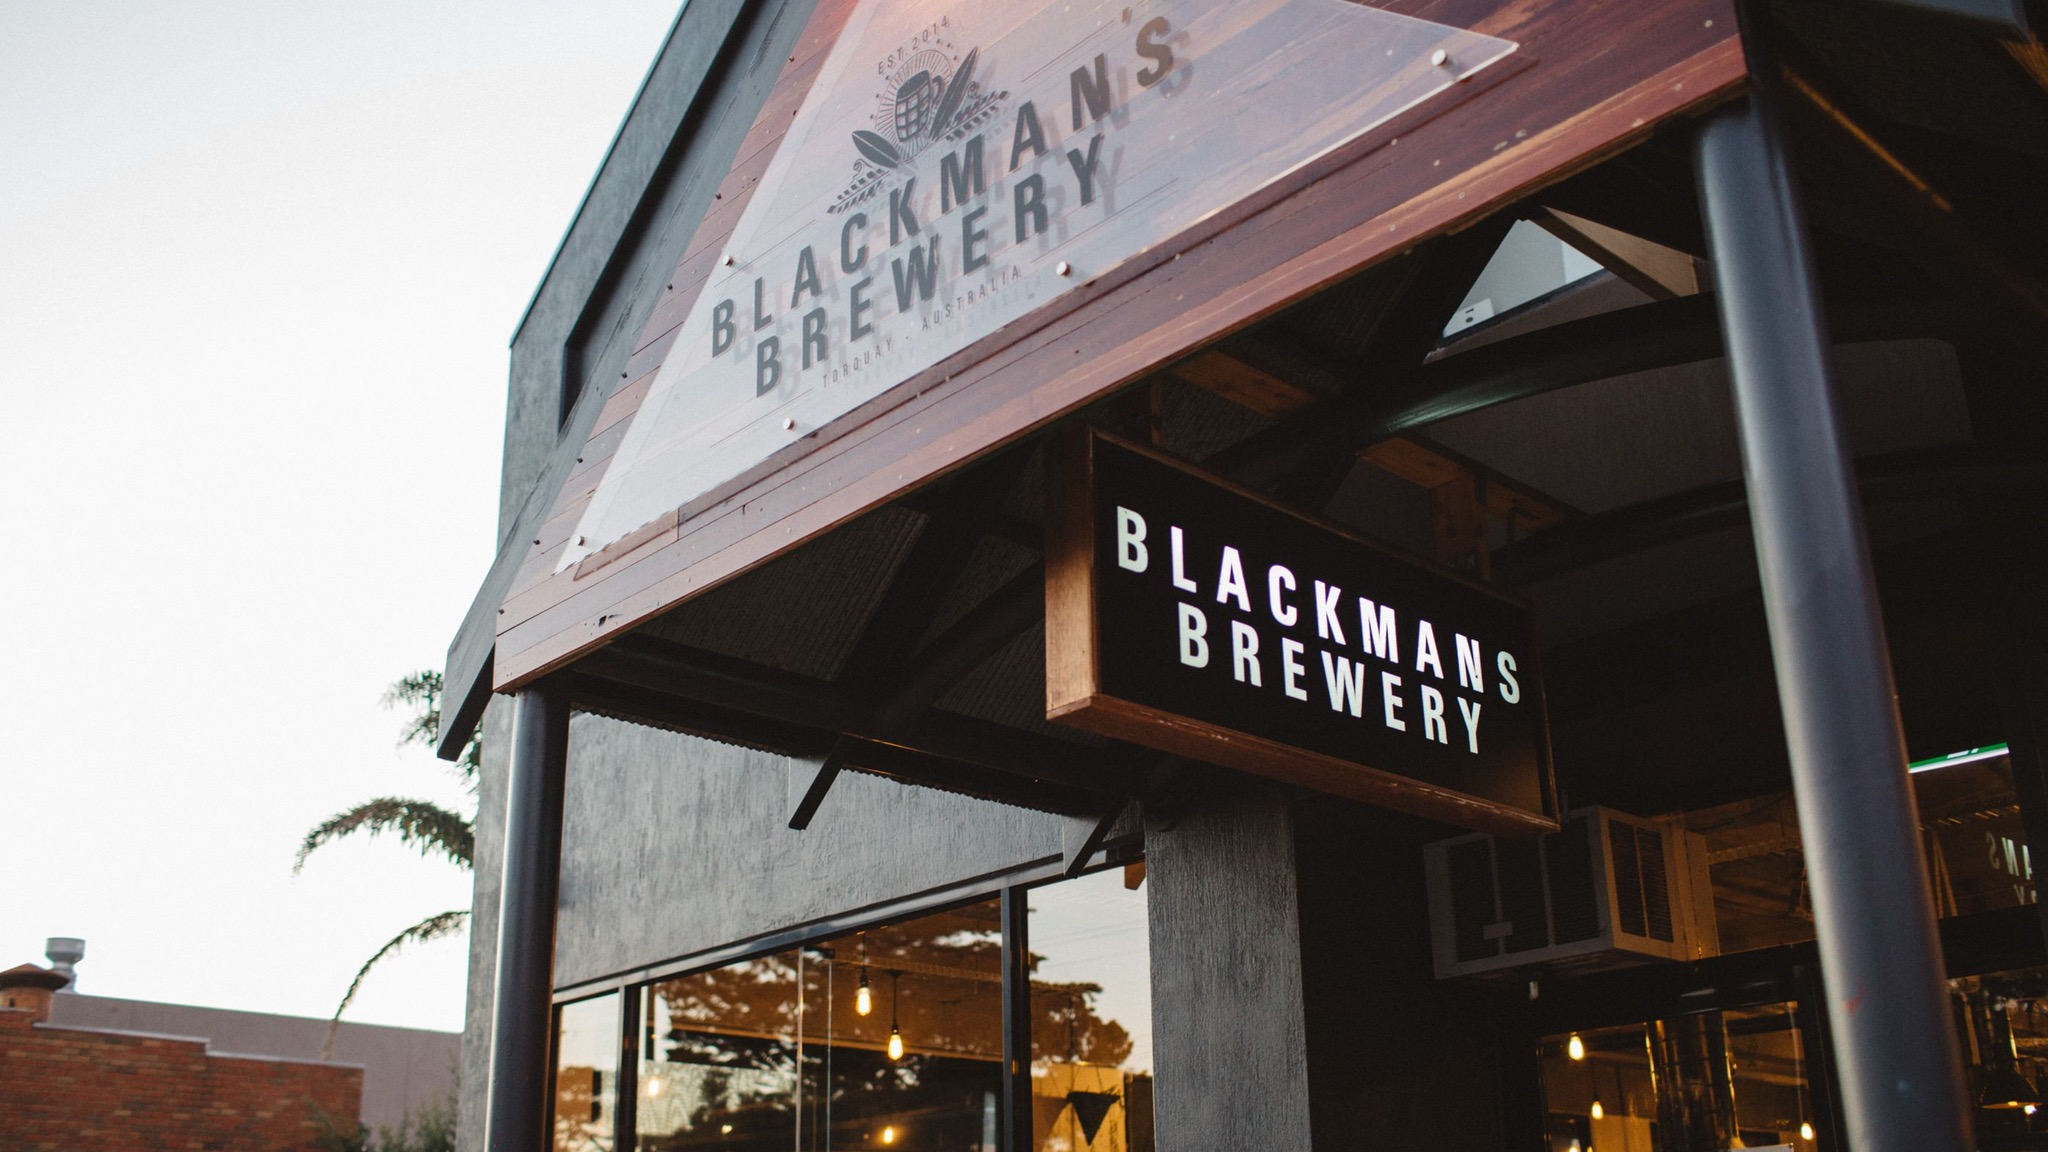 Blackman's Brewery